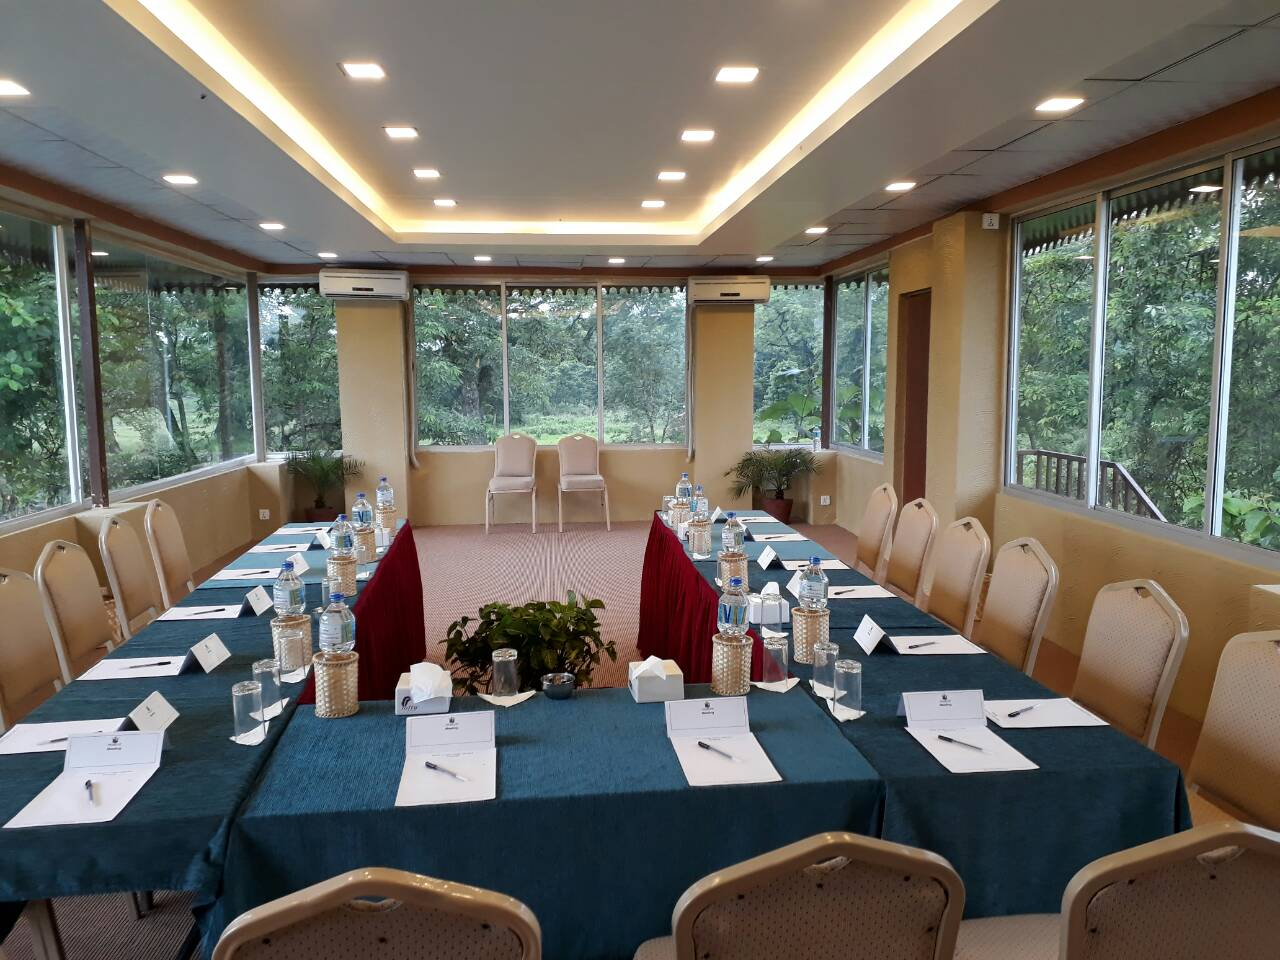 Hotel Jungle Crown Meeting Hall